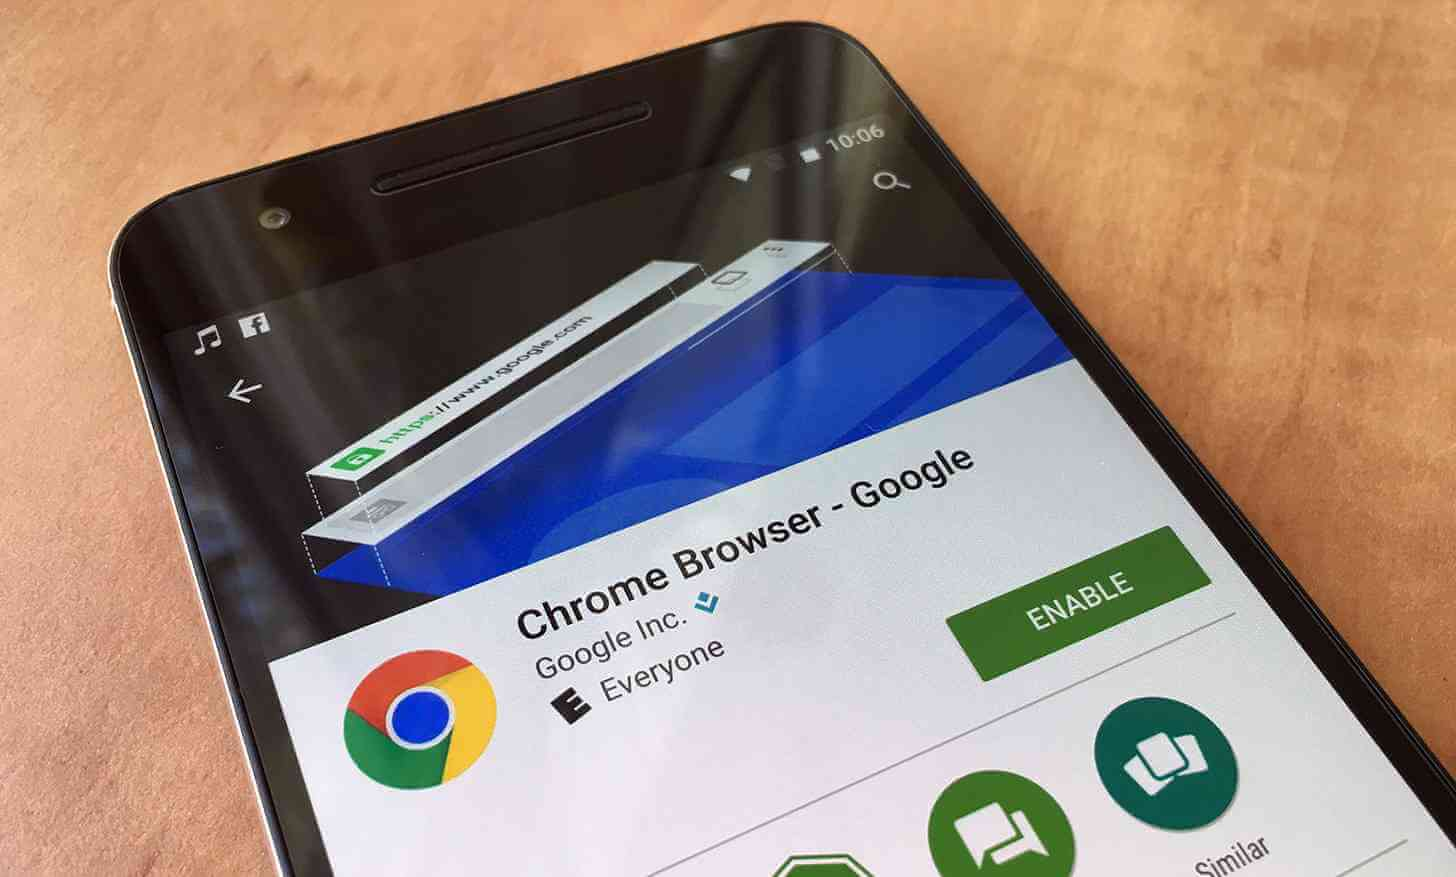 Chrome 70 adds biometric web authentication and shape detection